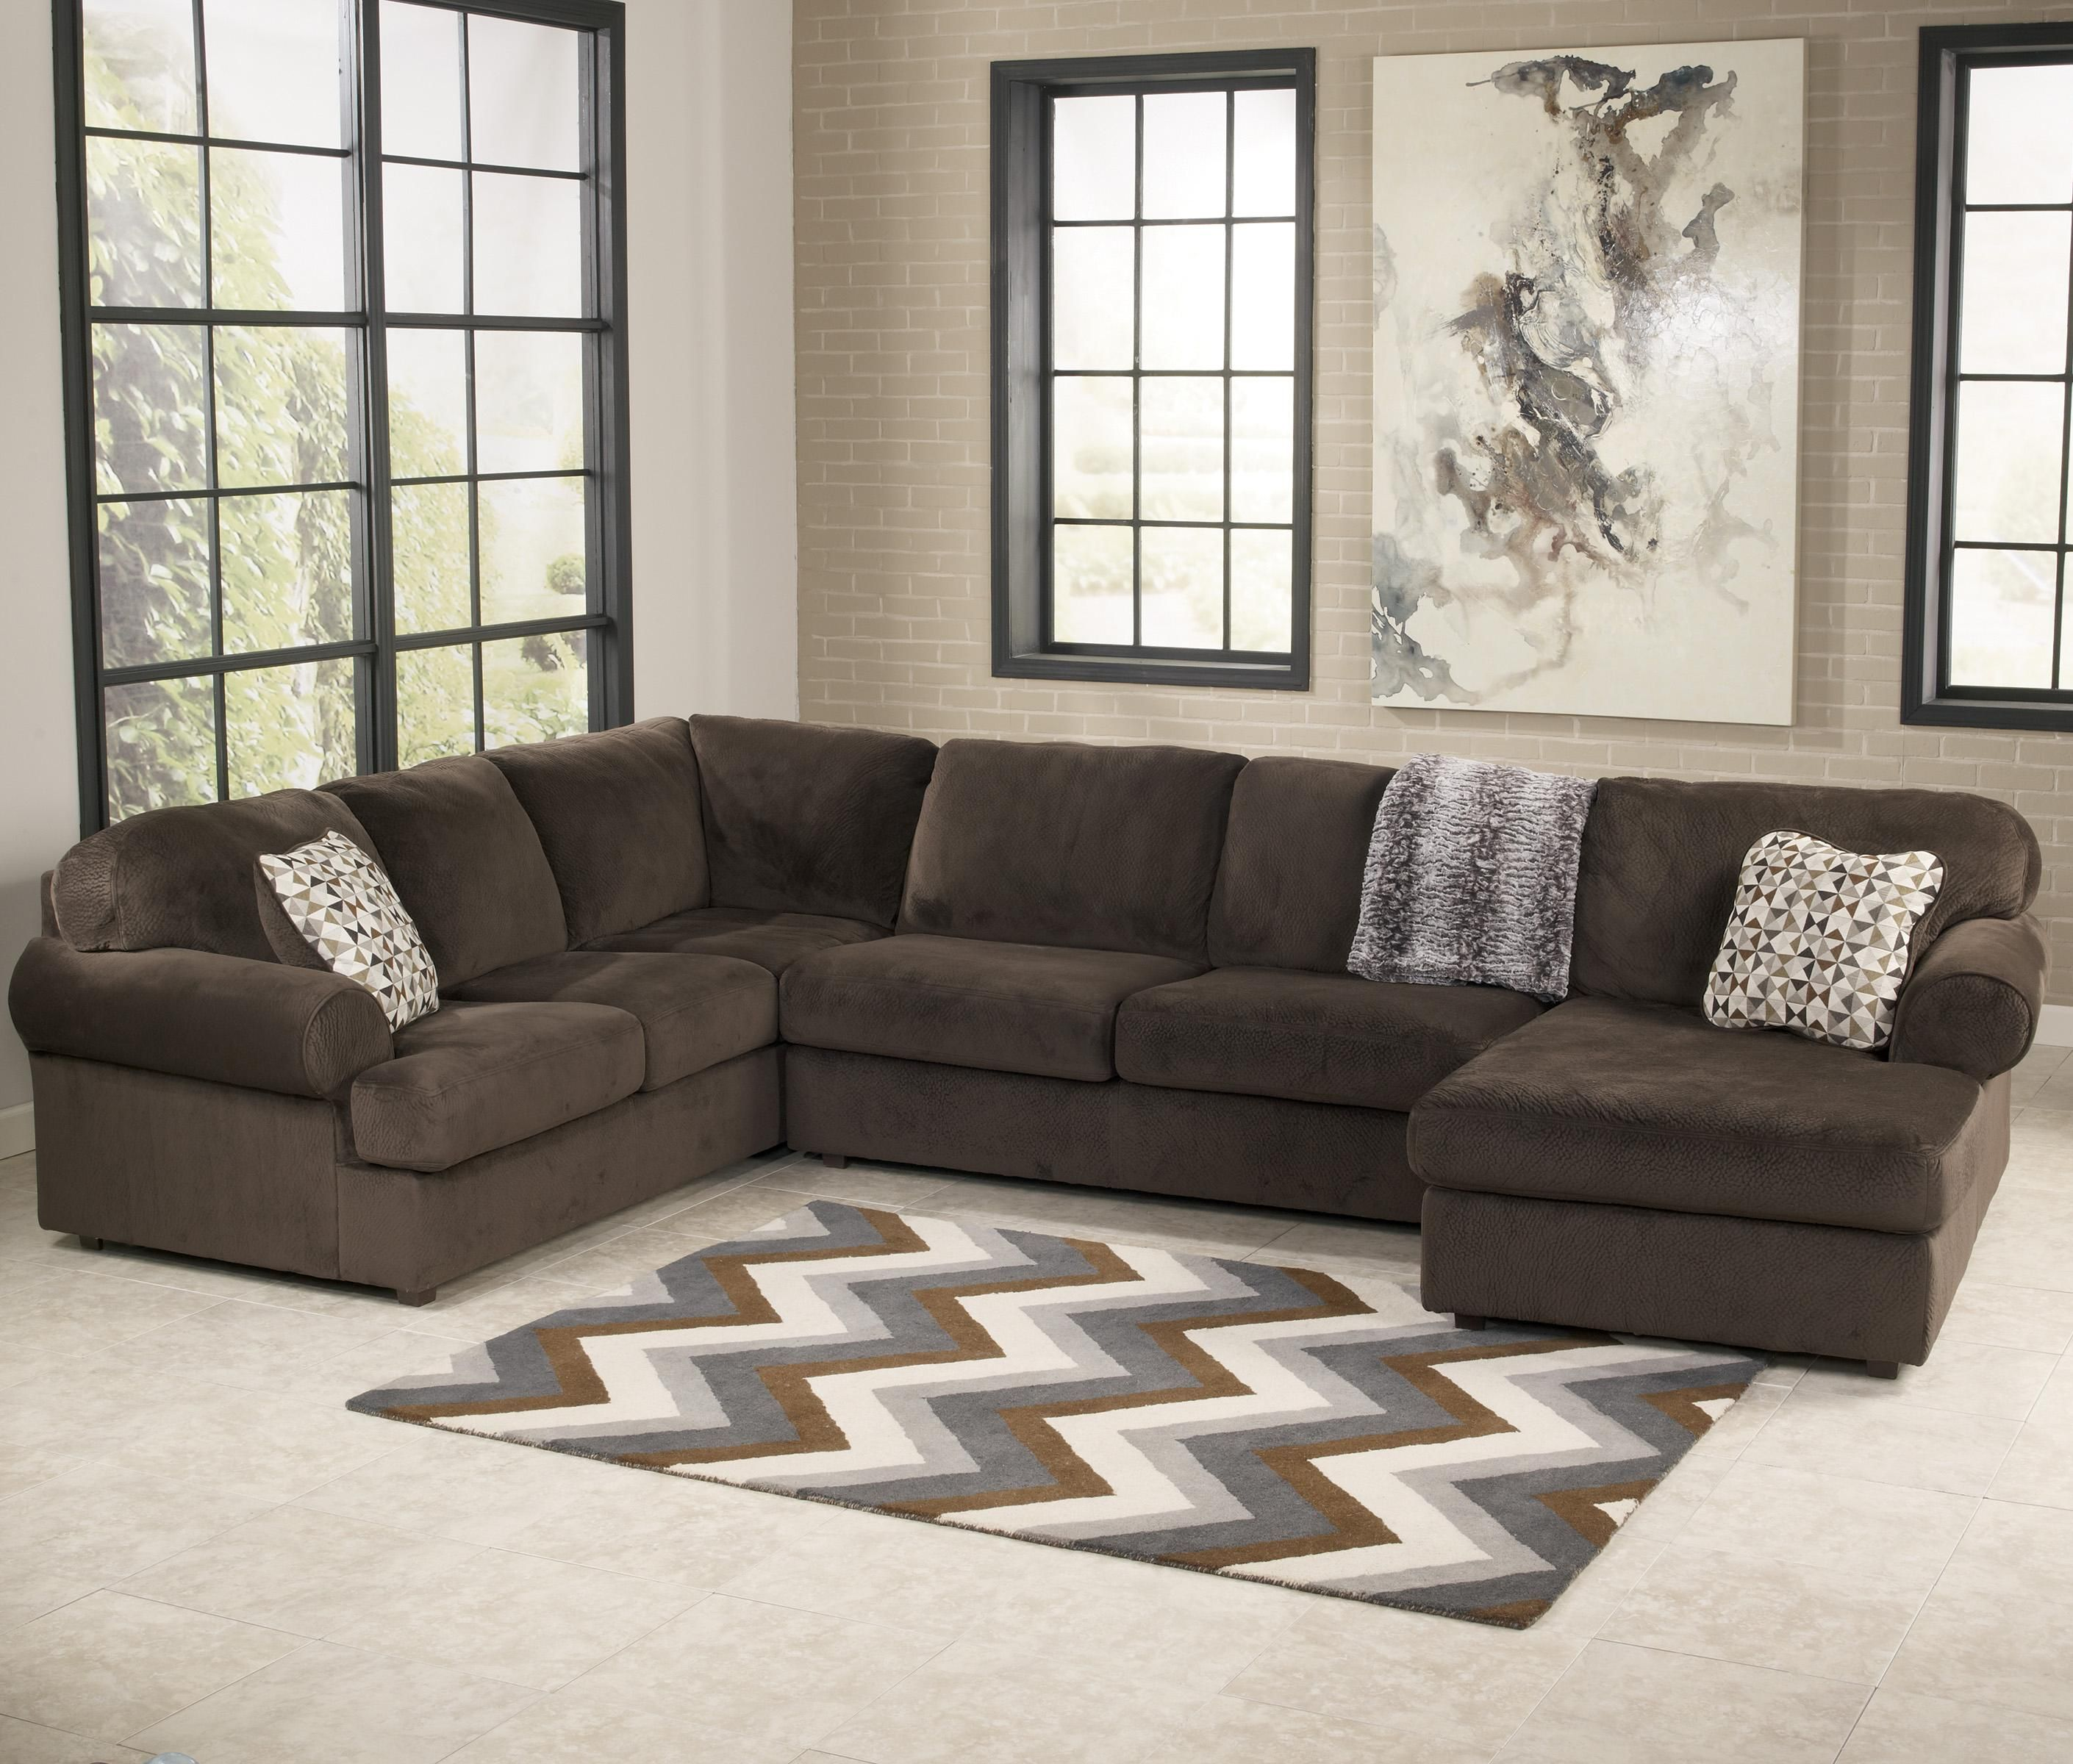 Jessa Place   Chocolate Sectional Sofa With Right Chaise By Signature  Design By Ashley Www.